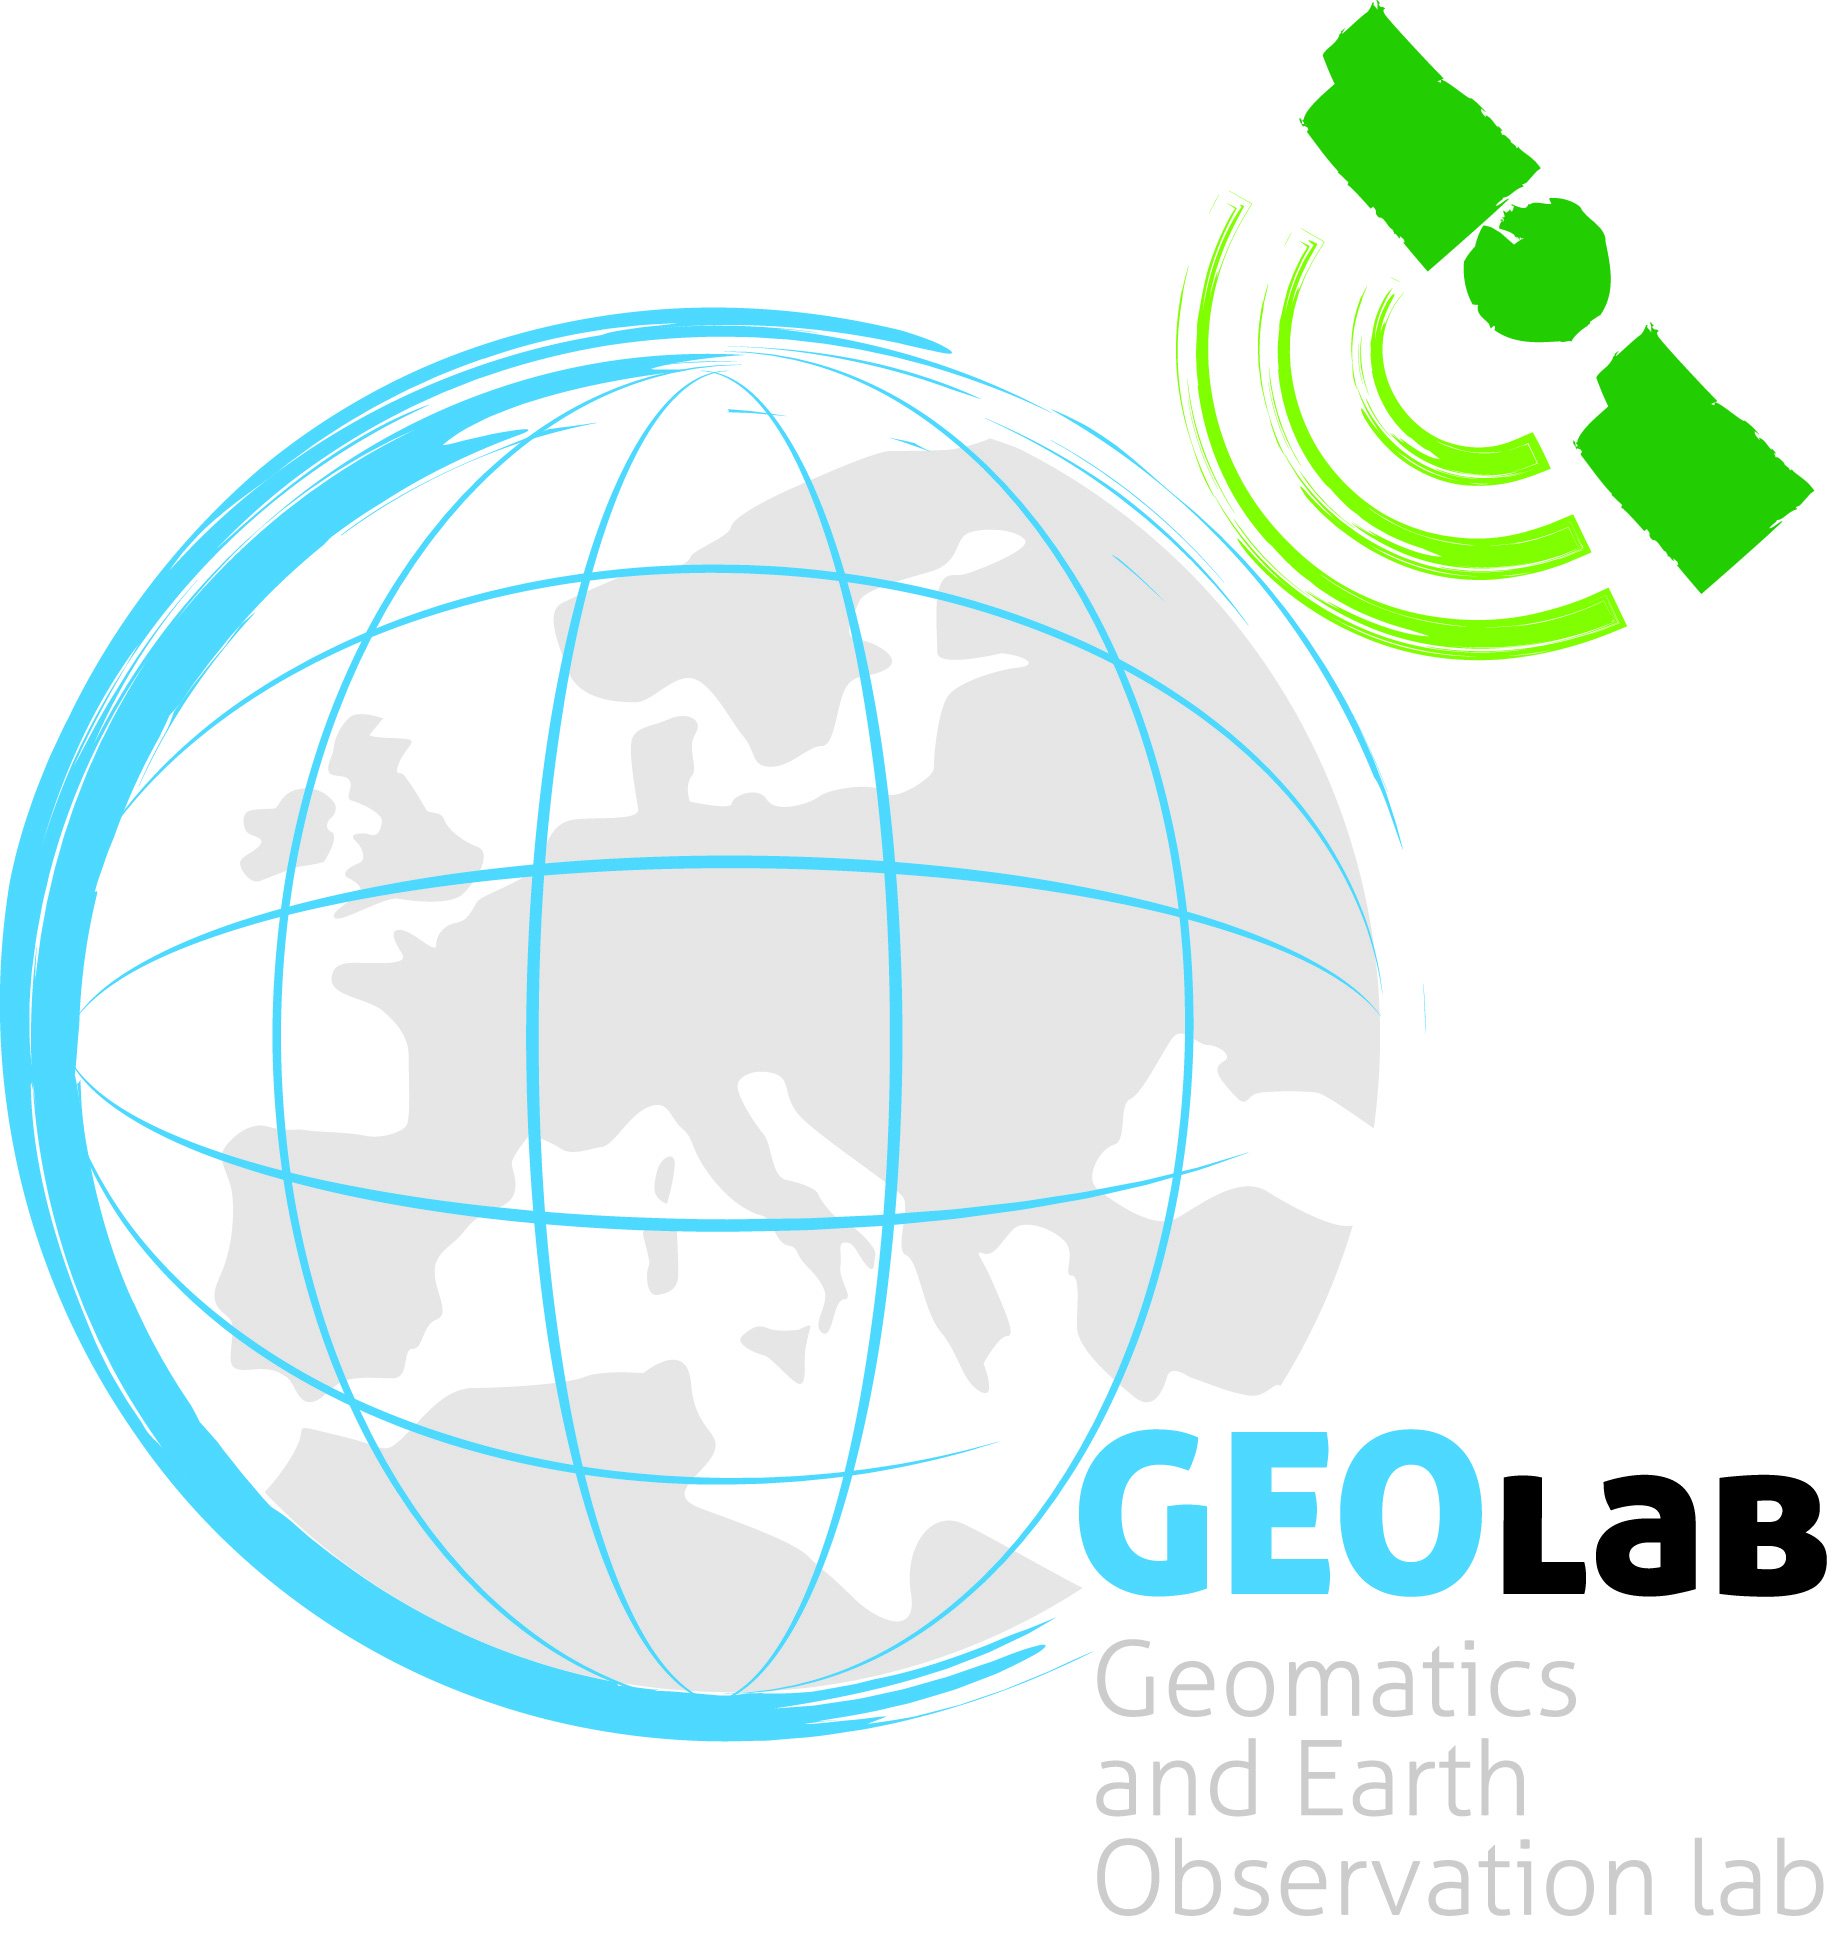 GEOlab - Geomatics and Earth Observation Laboratory